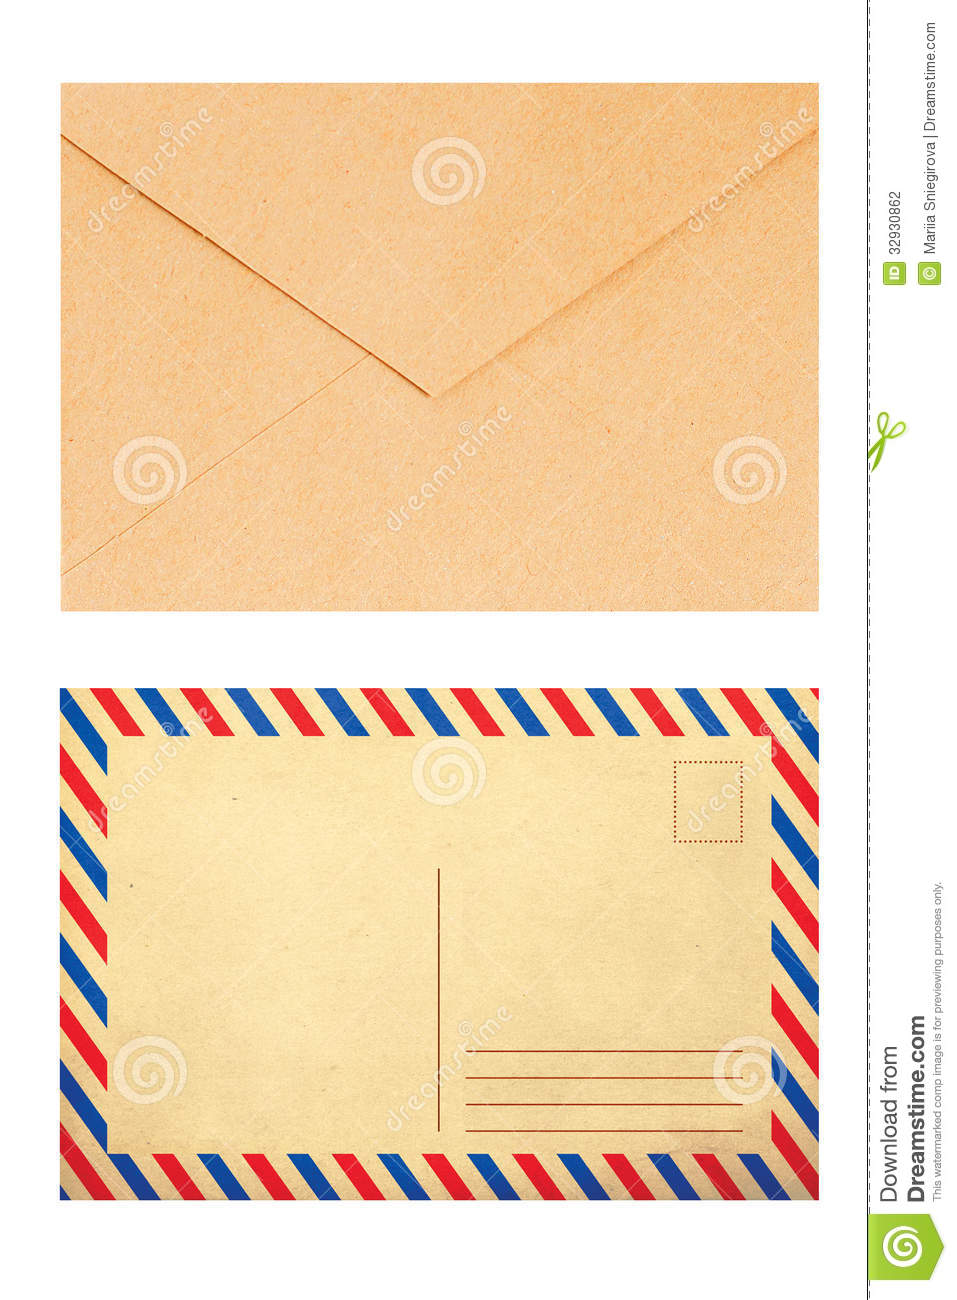 colorful envelope vintage style trend style 32930862 jpg